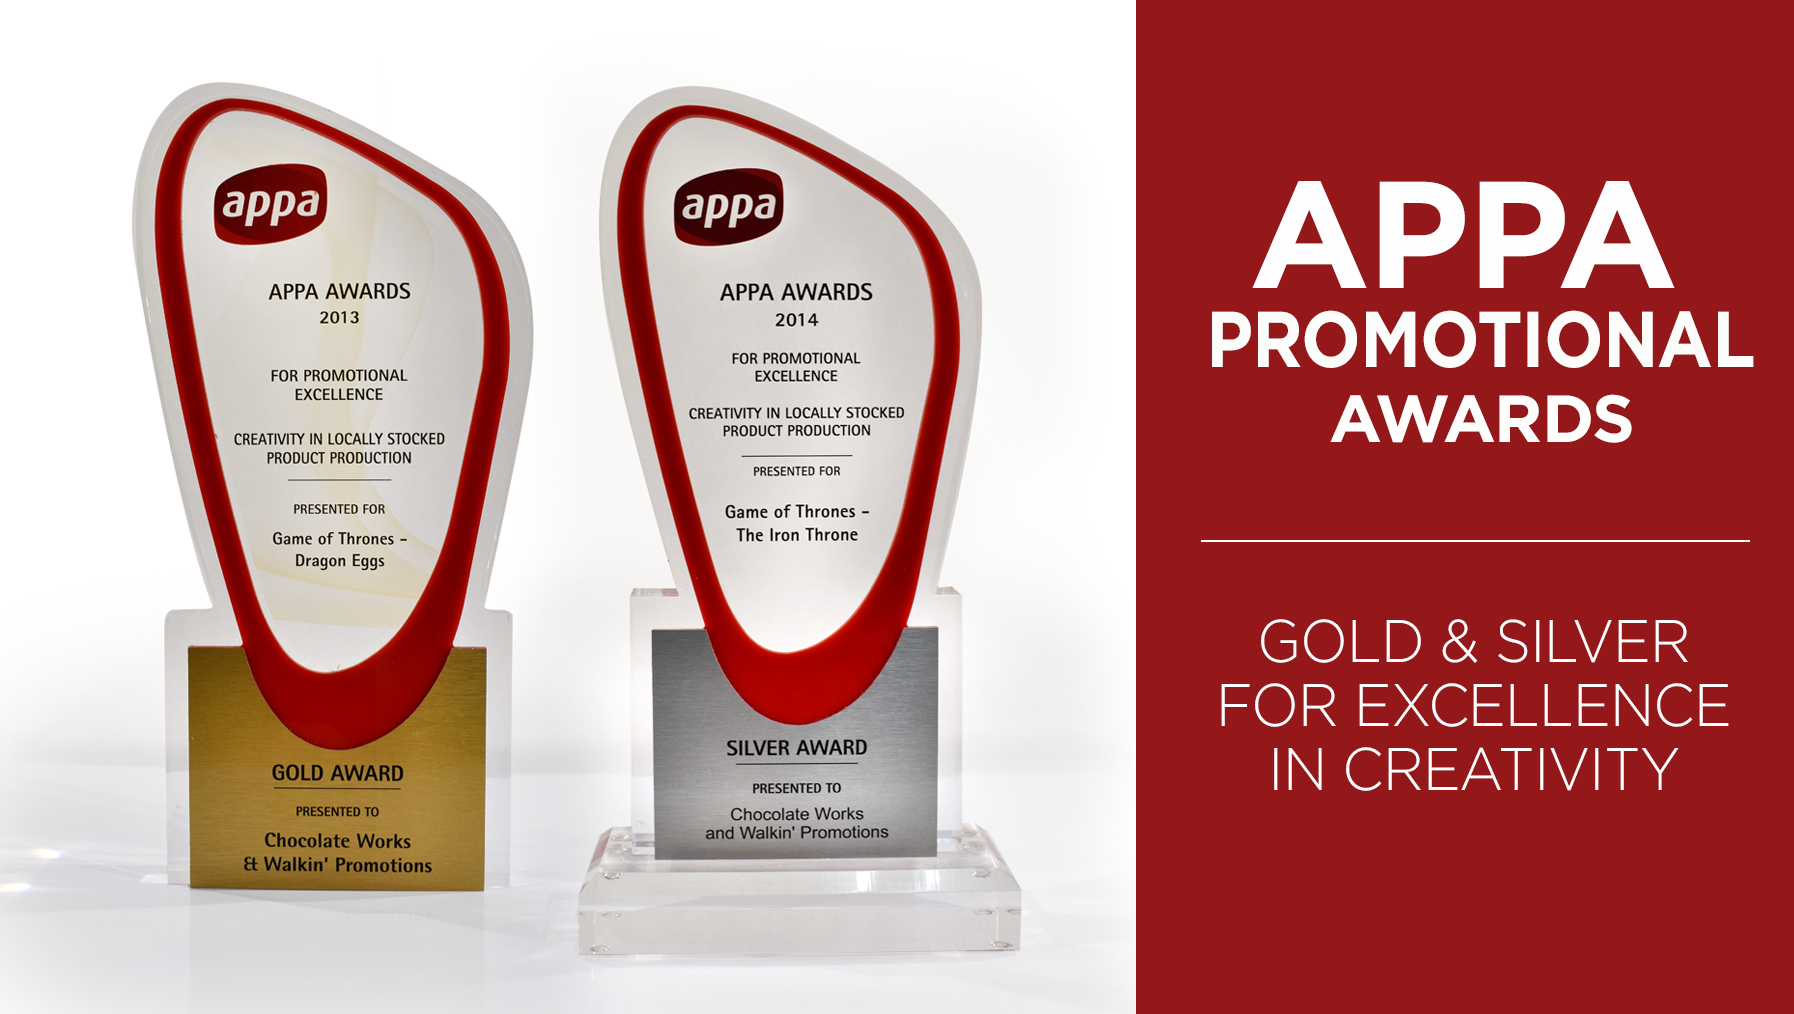 APPA PROMOTIONAL AWARDS